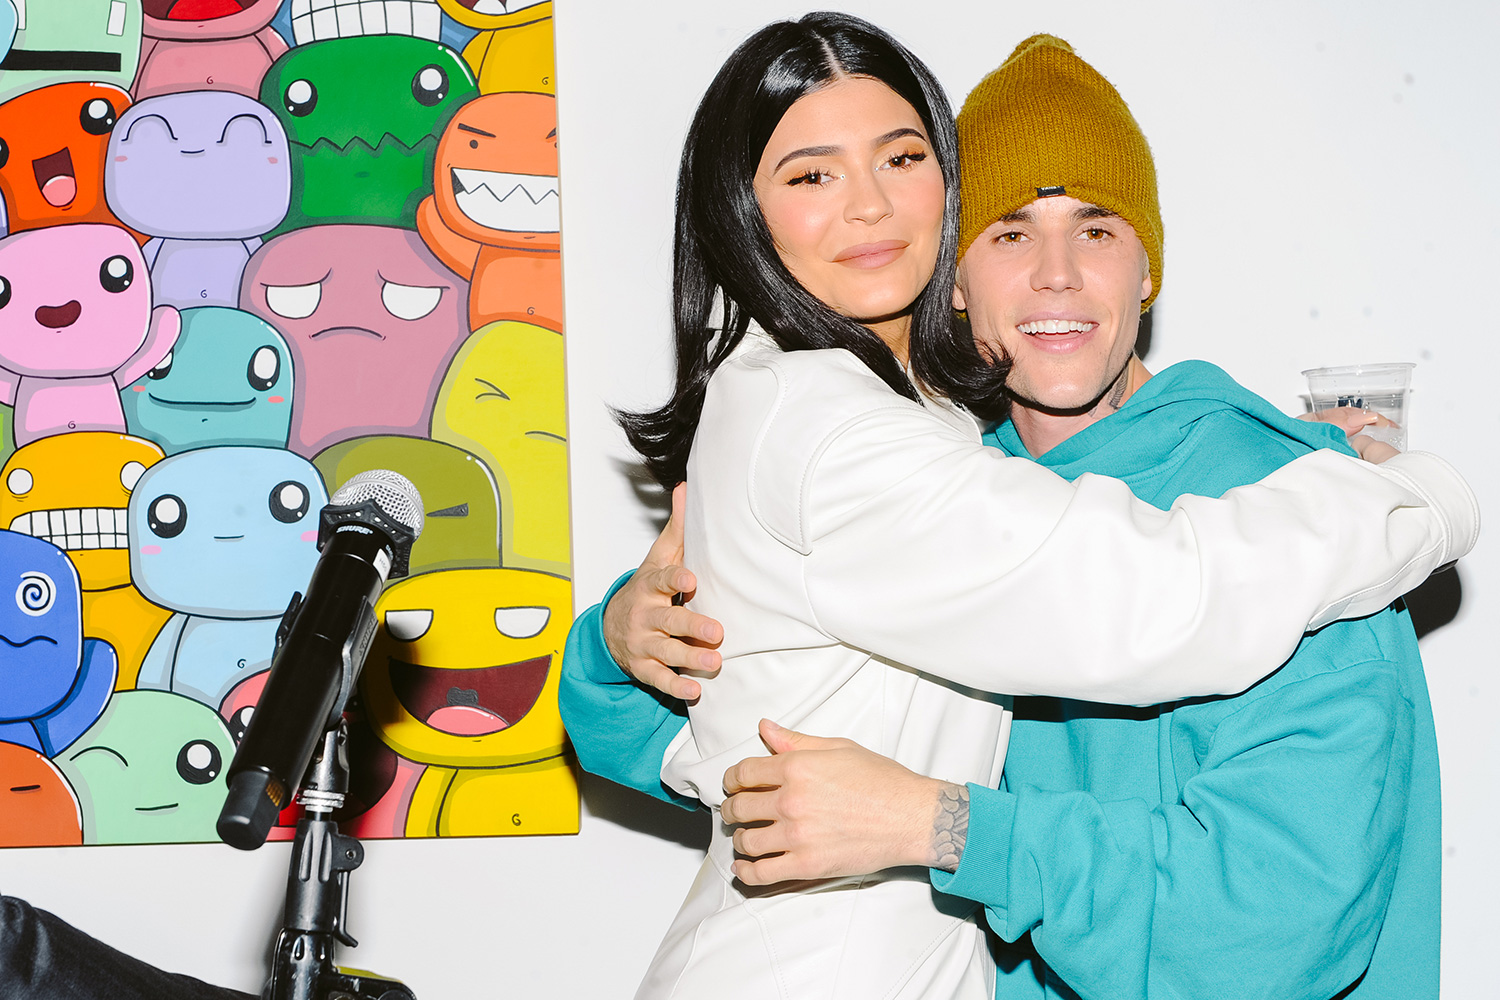 Kylie Jenner and Justin Bieber attend T-Mobile Presents: The Biebers x LIFT LA x Inner-City Arts with Paddle8, UTA Artist Space, Beverly Hills, December 13, 2019